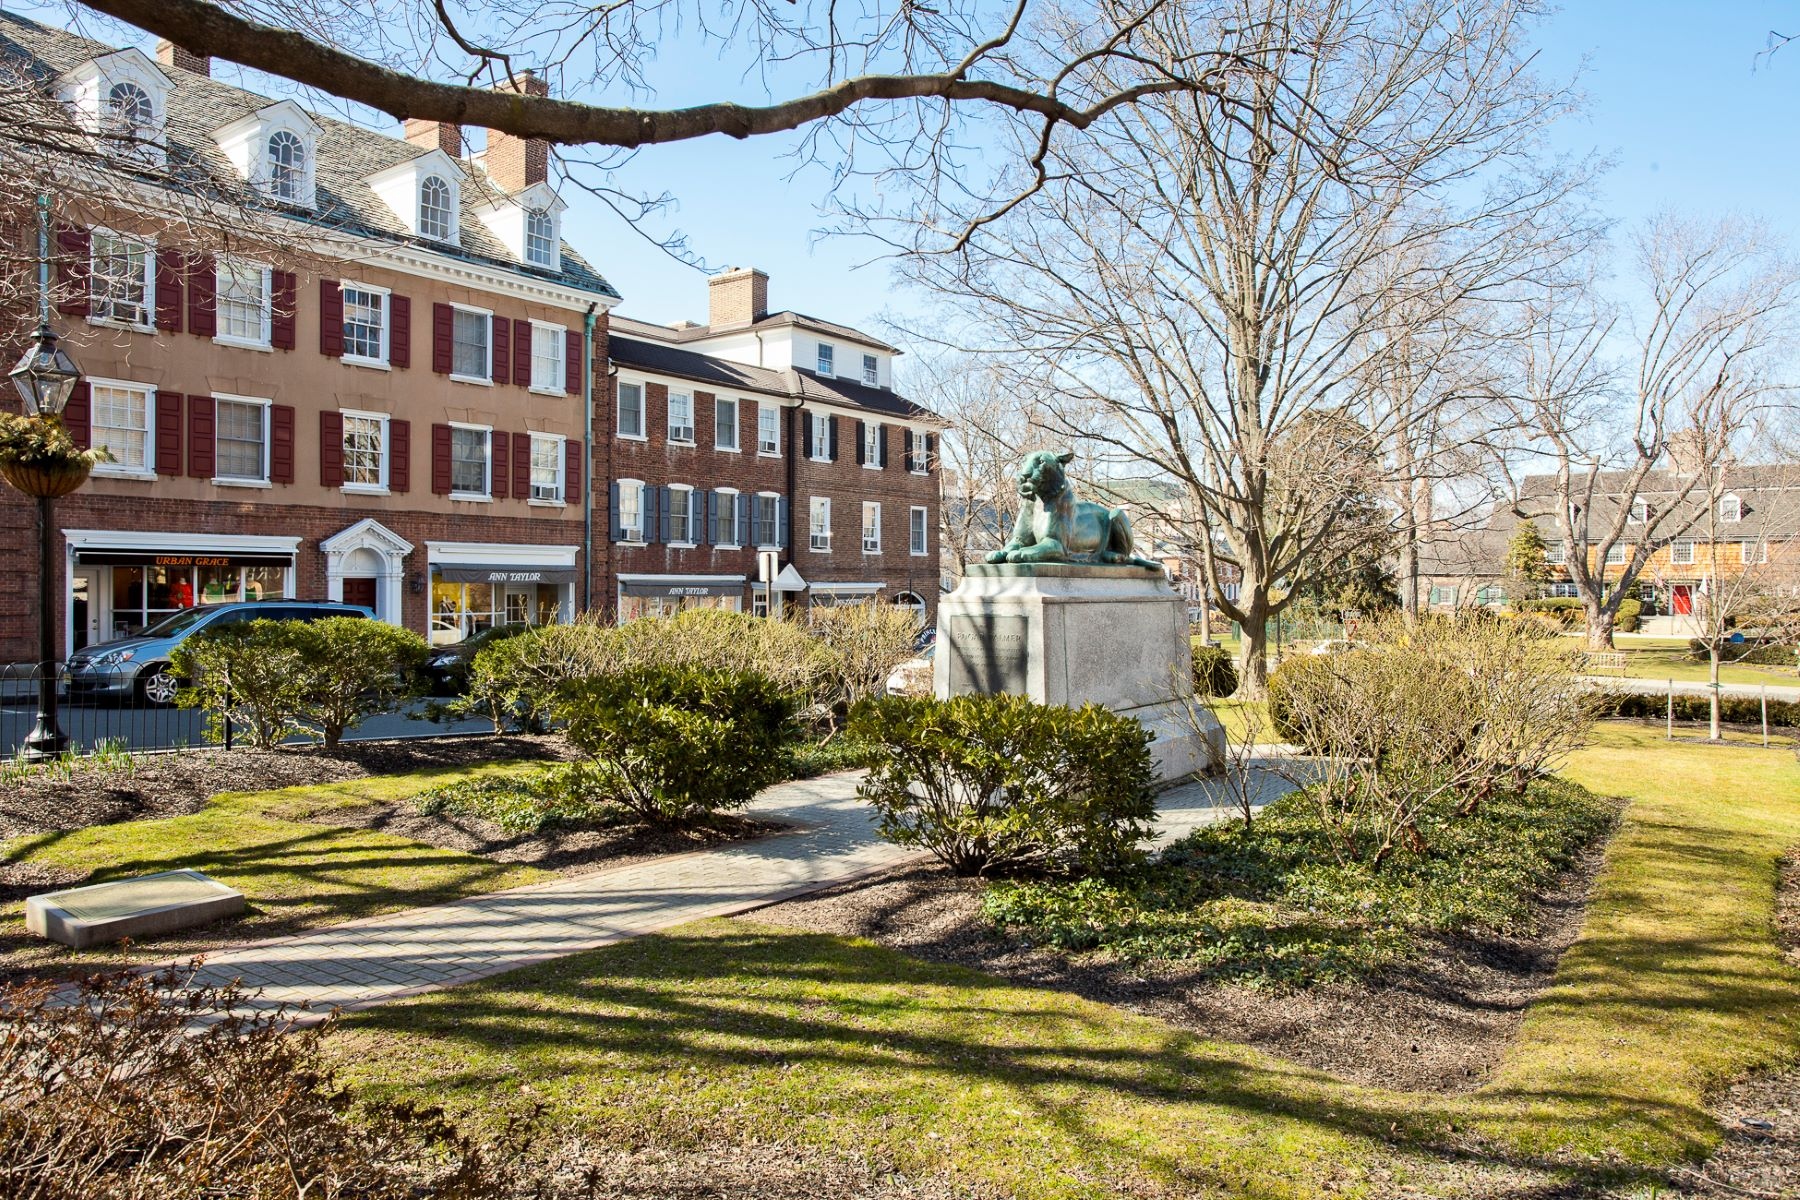 Additional photo for property listing at Welcome to 30 Maclean! 30 Maclean Street, Unit 3, Princeton, New Jersey 08542 United States